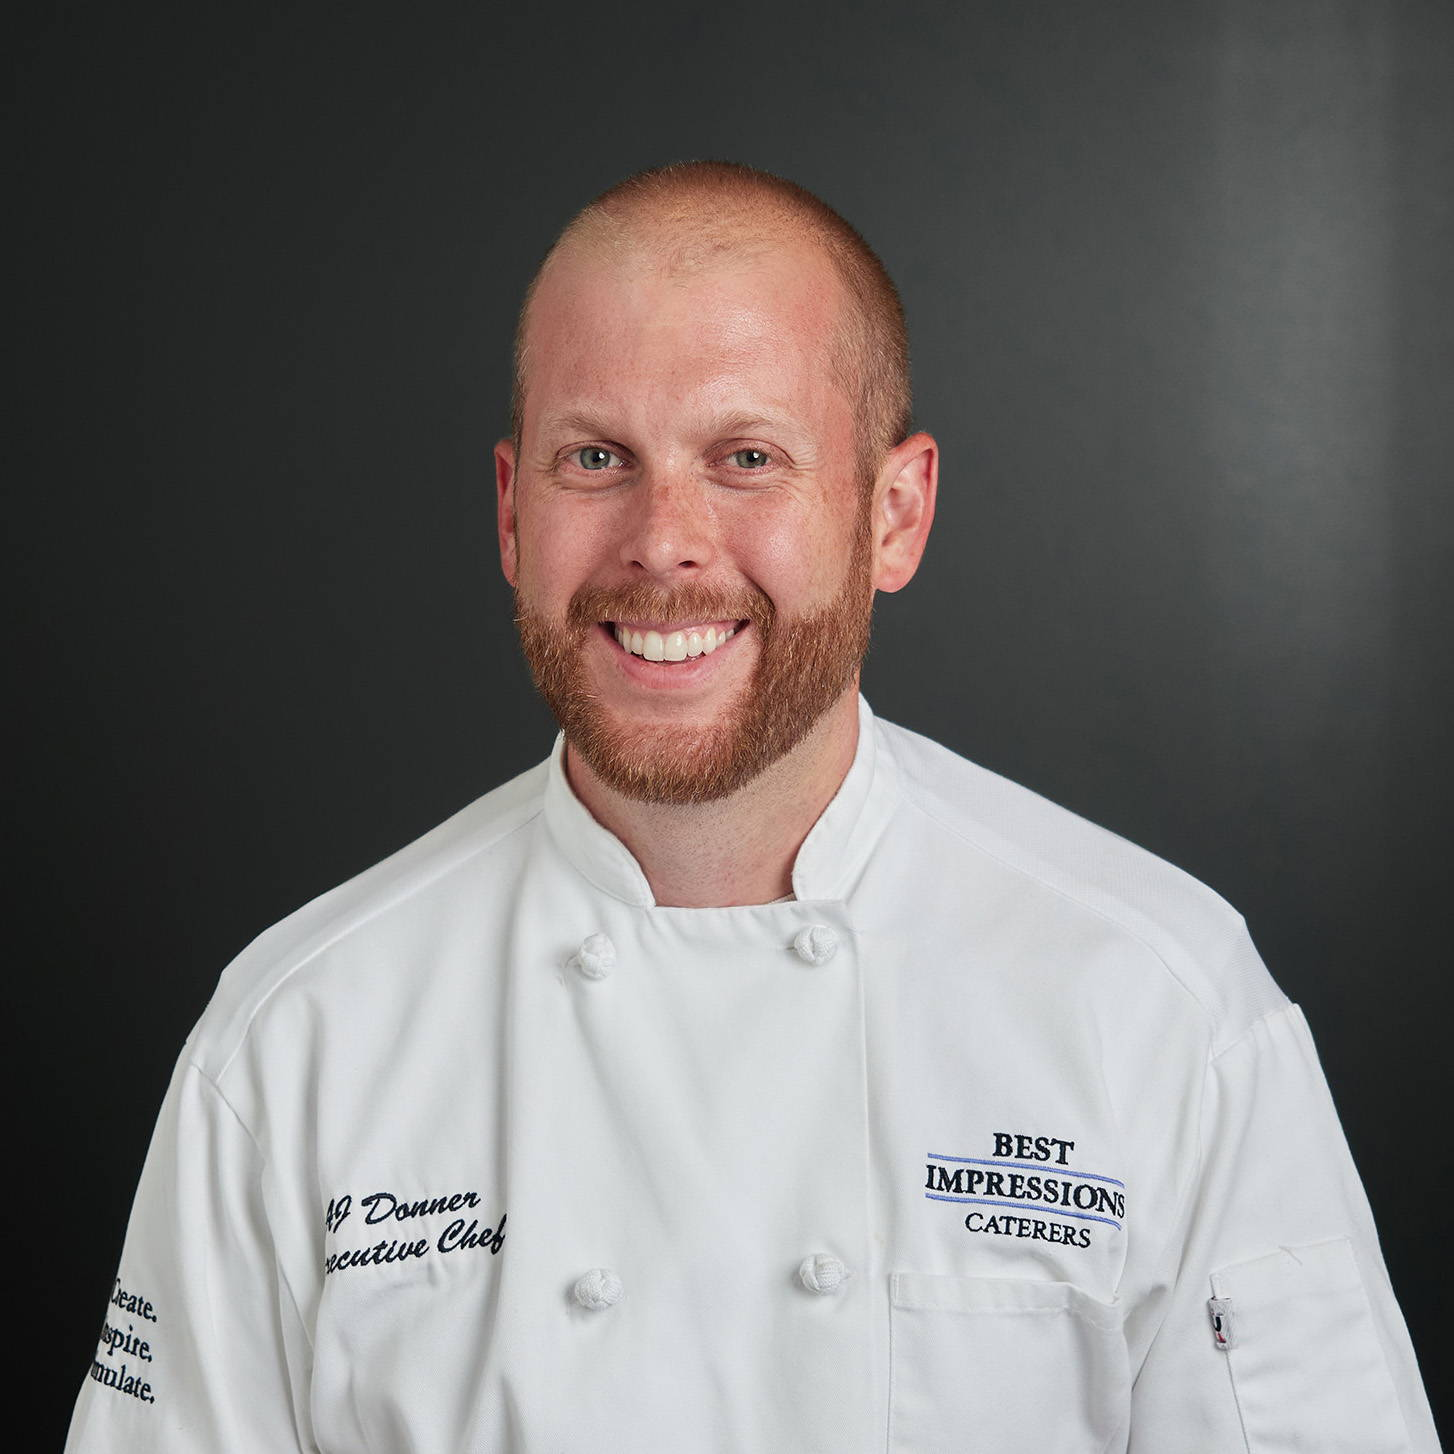 Executive Chef AJ Donner